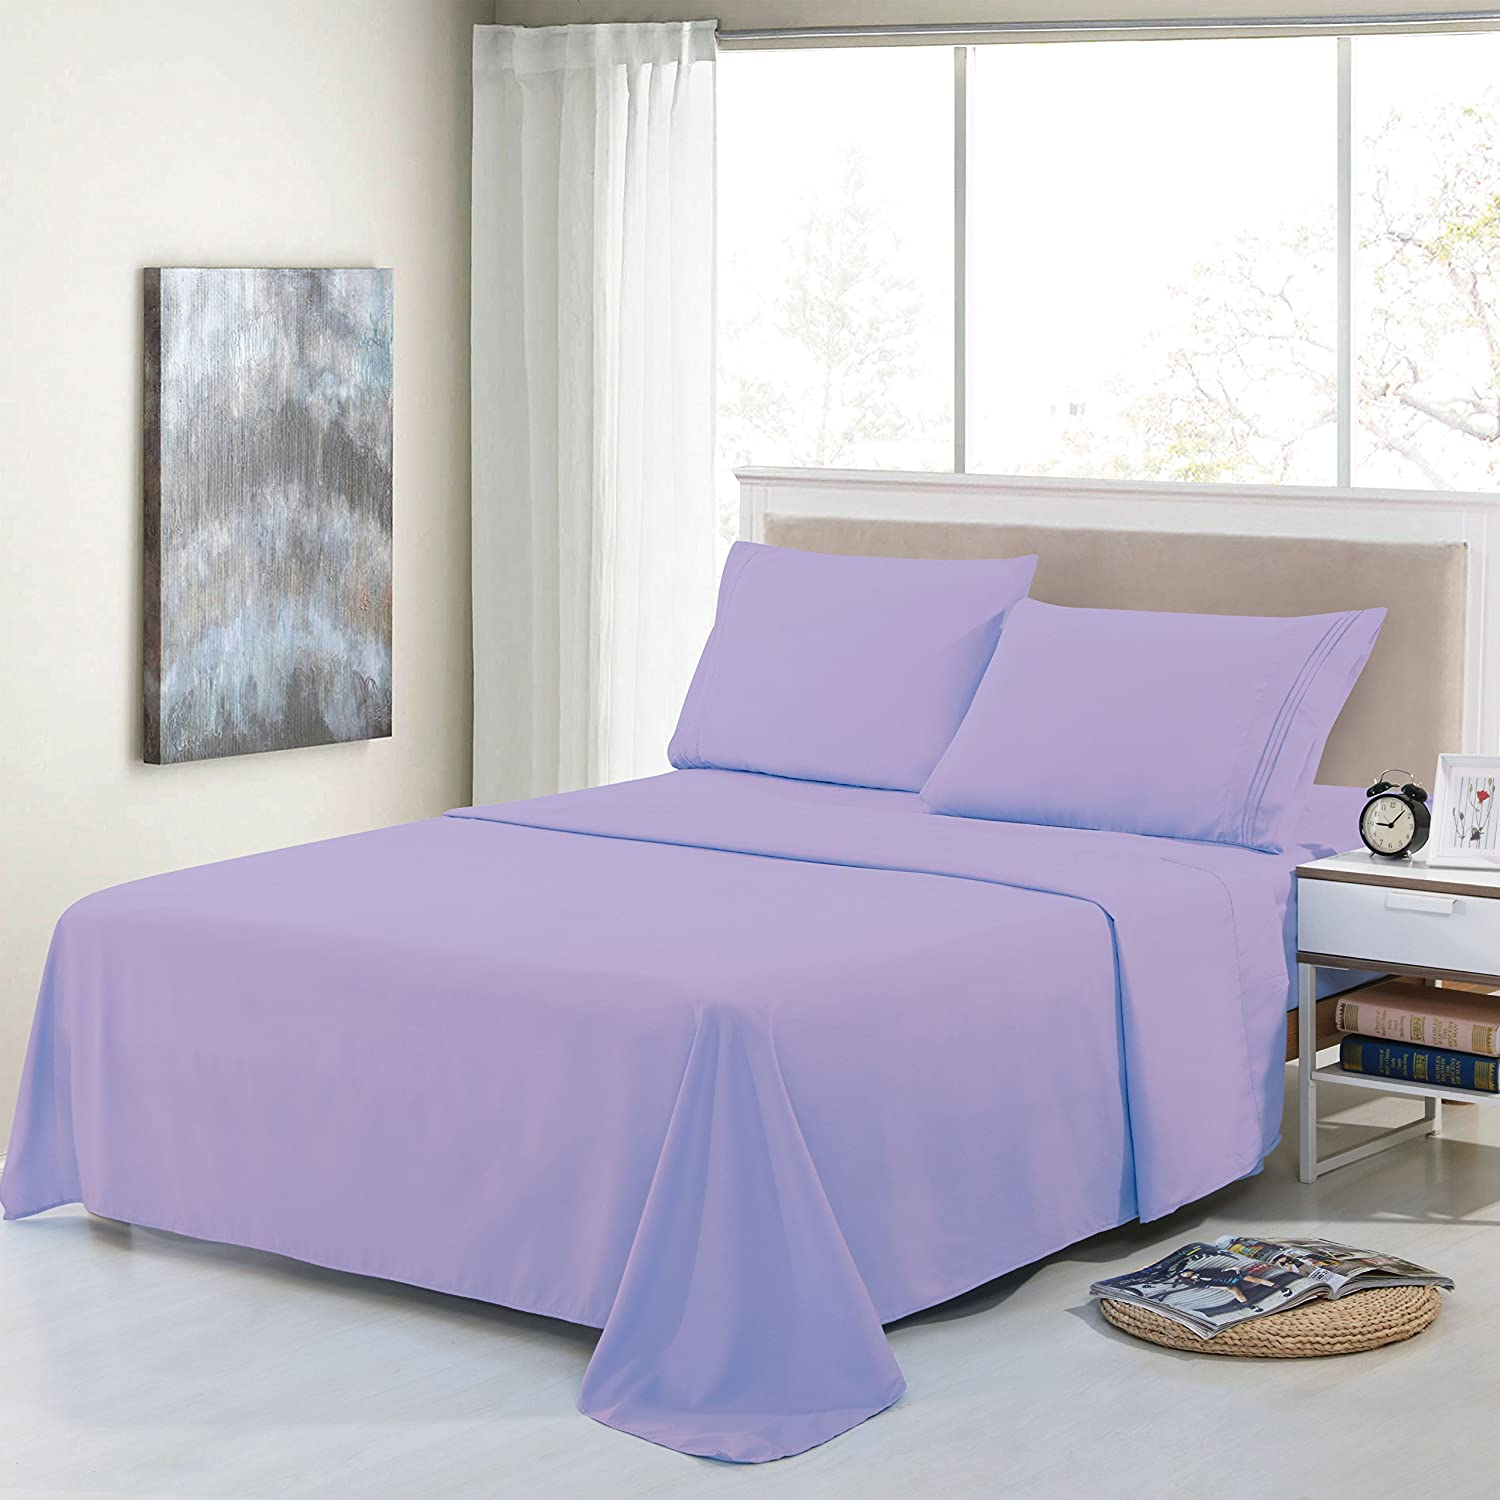 Premium Egyptian Luxury 1800 Hotel Collection Embroidery 3 Piece Bed Sheet Lavender